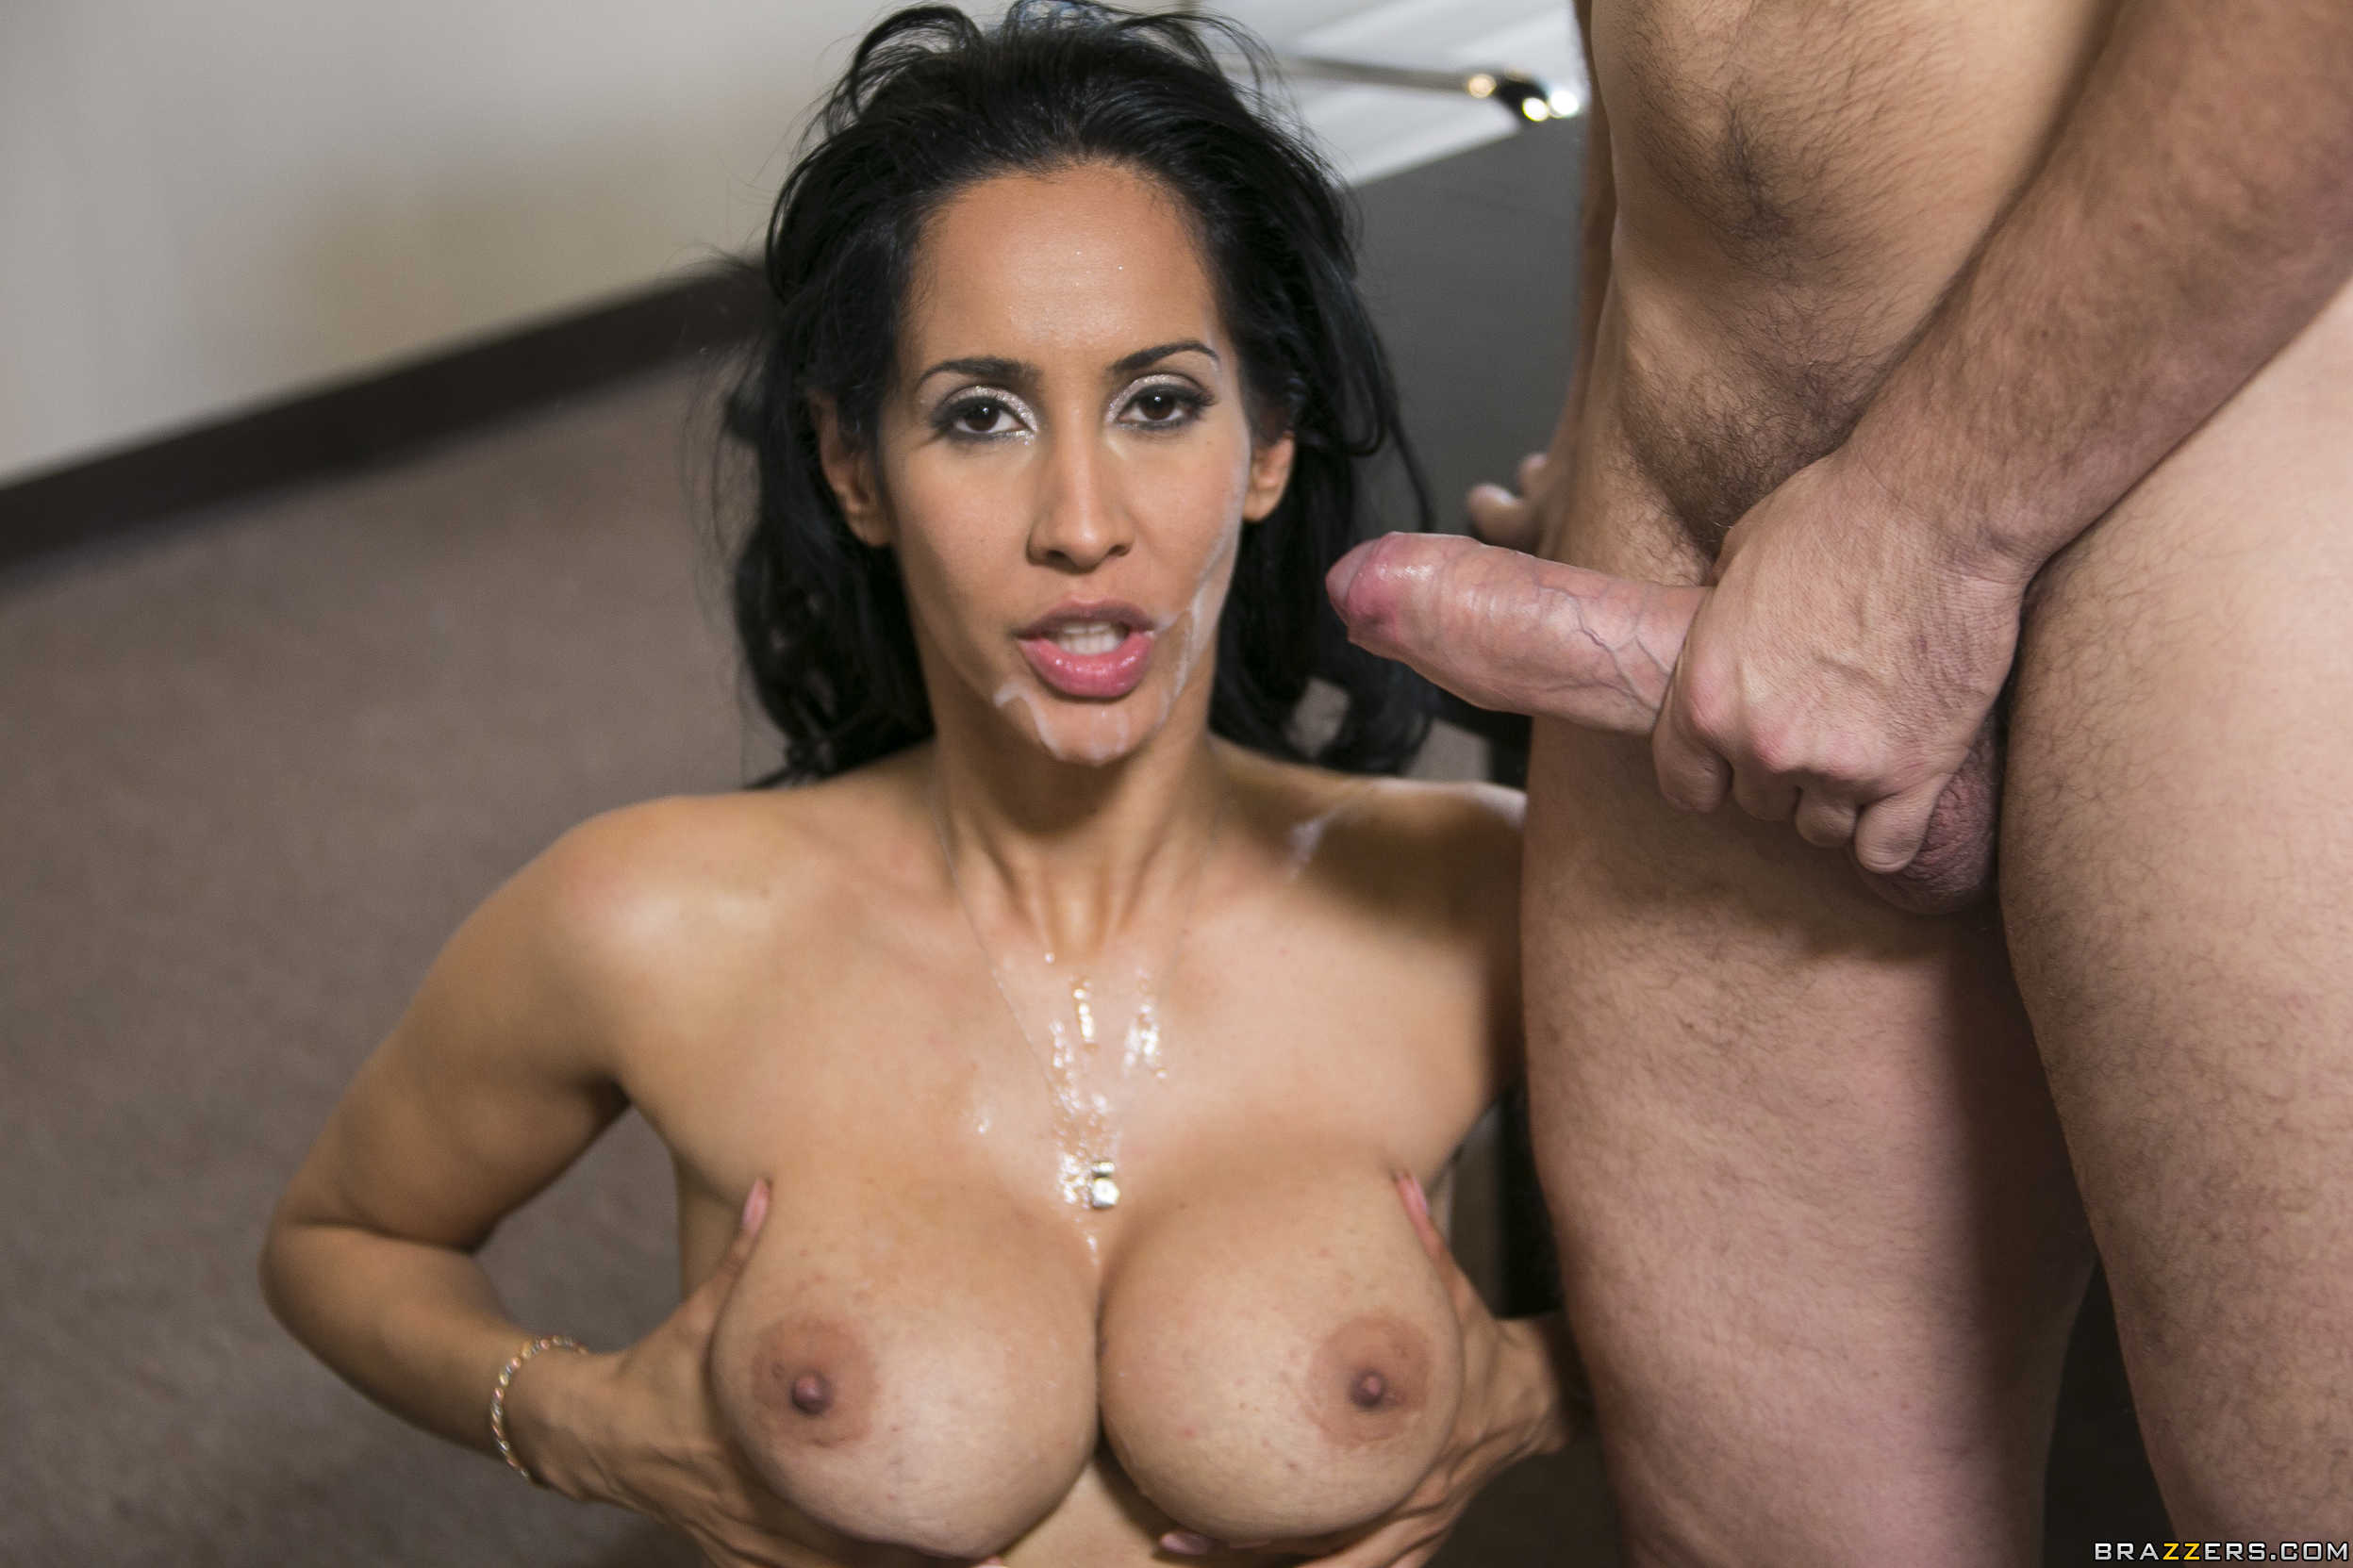 Granny kim swallows some big meat - 3 part 5